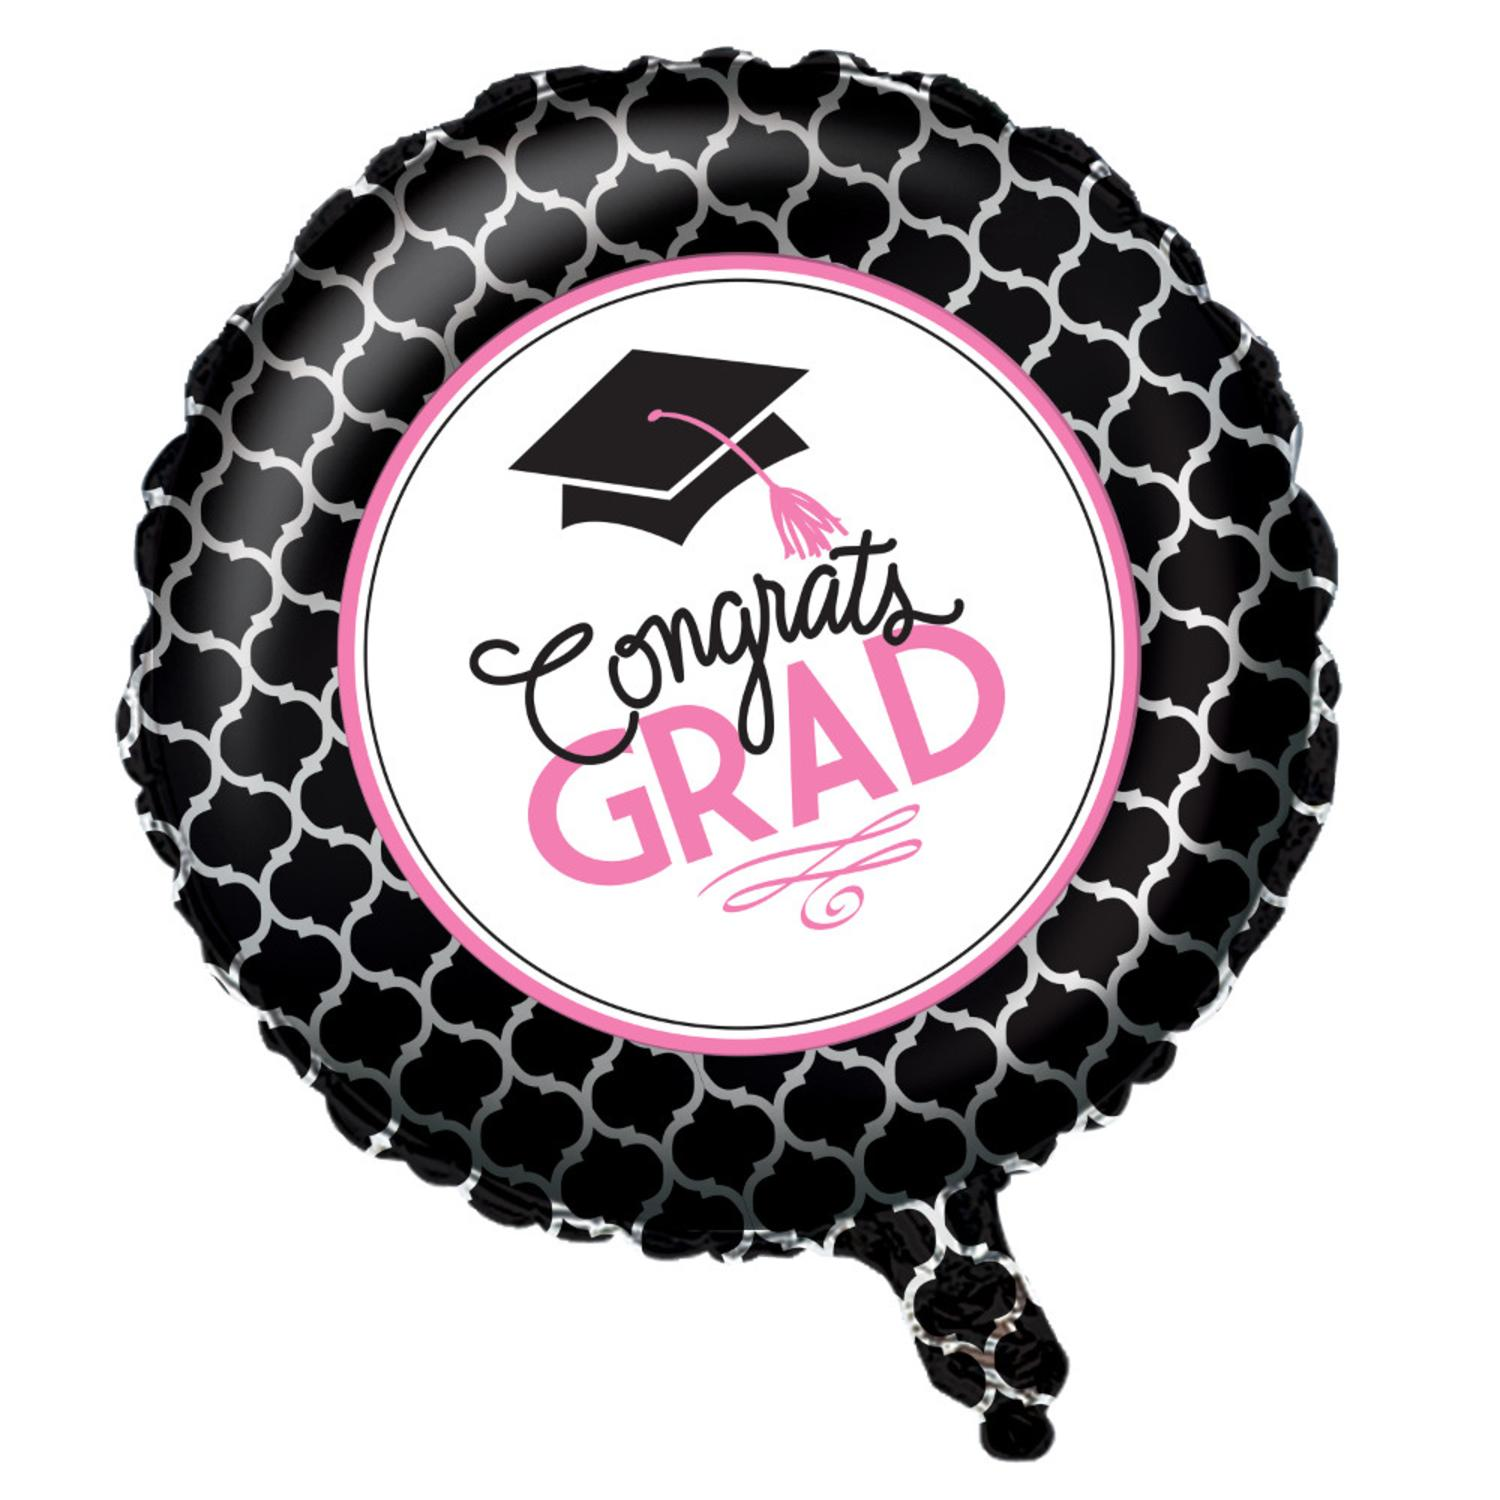 "Pack of 10 Black and Pink ""Congrats Grad"" Balloons 18"" Glamorous Grad Collection"